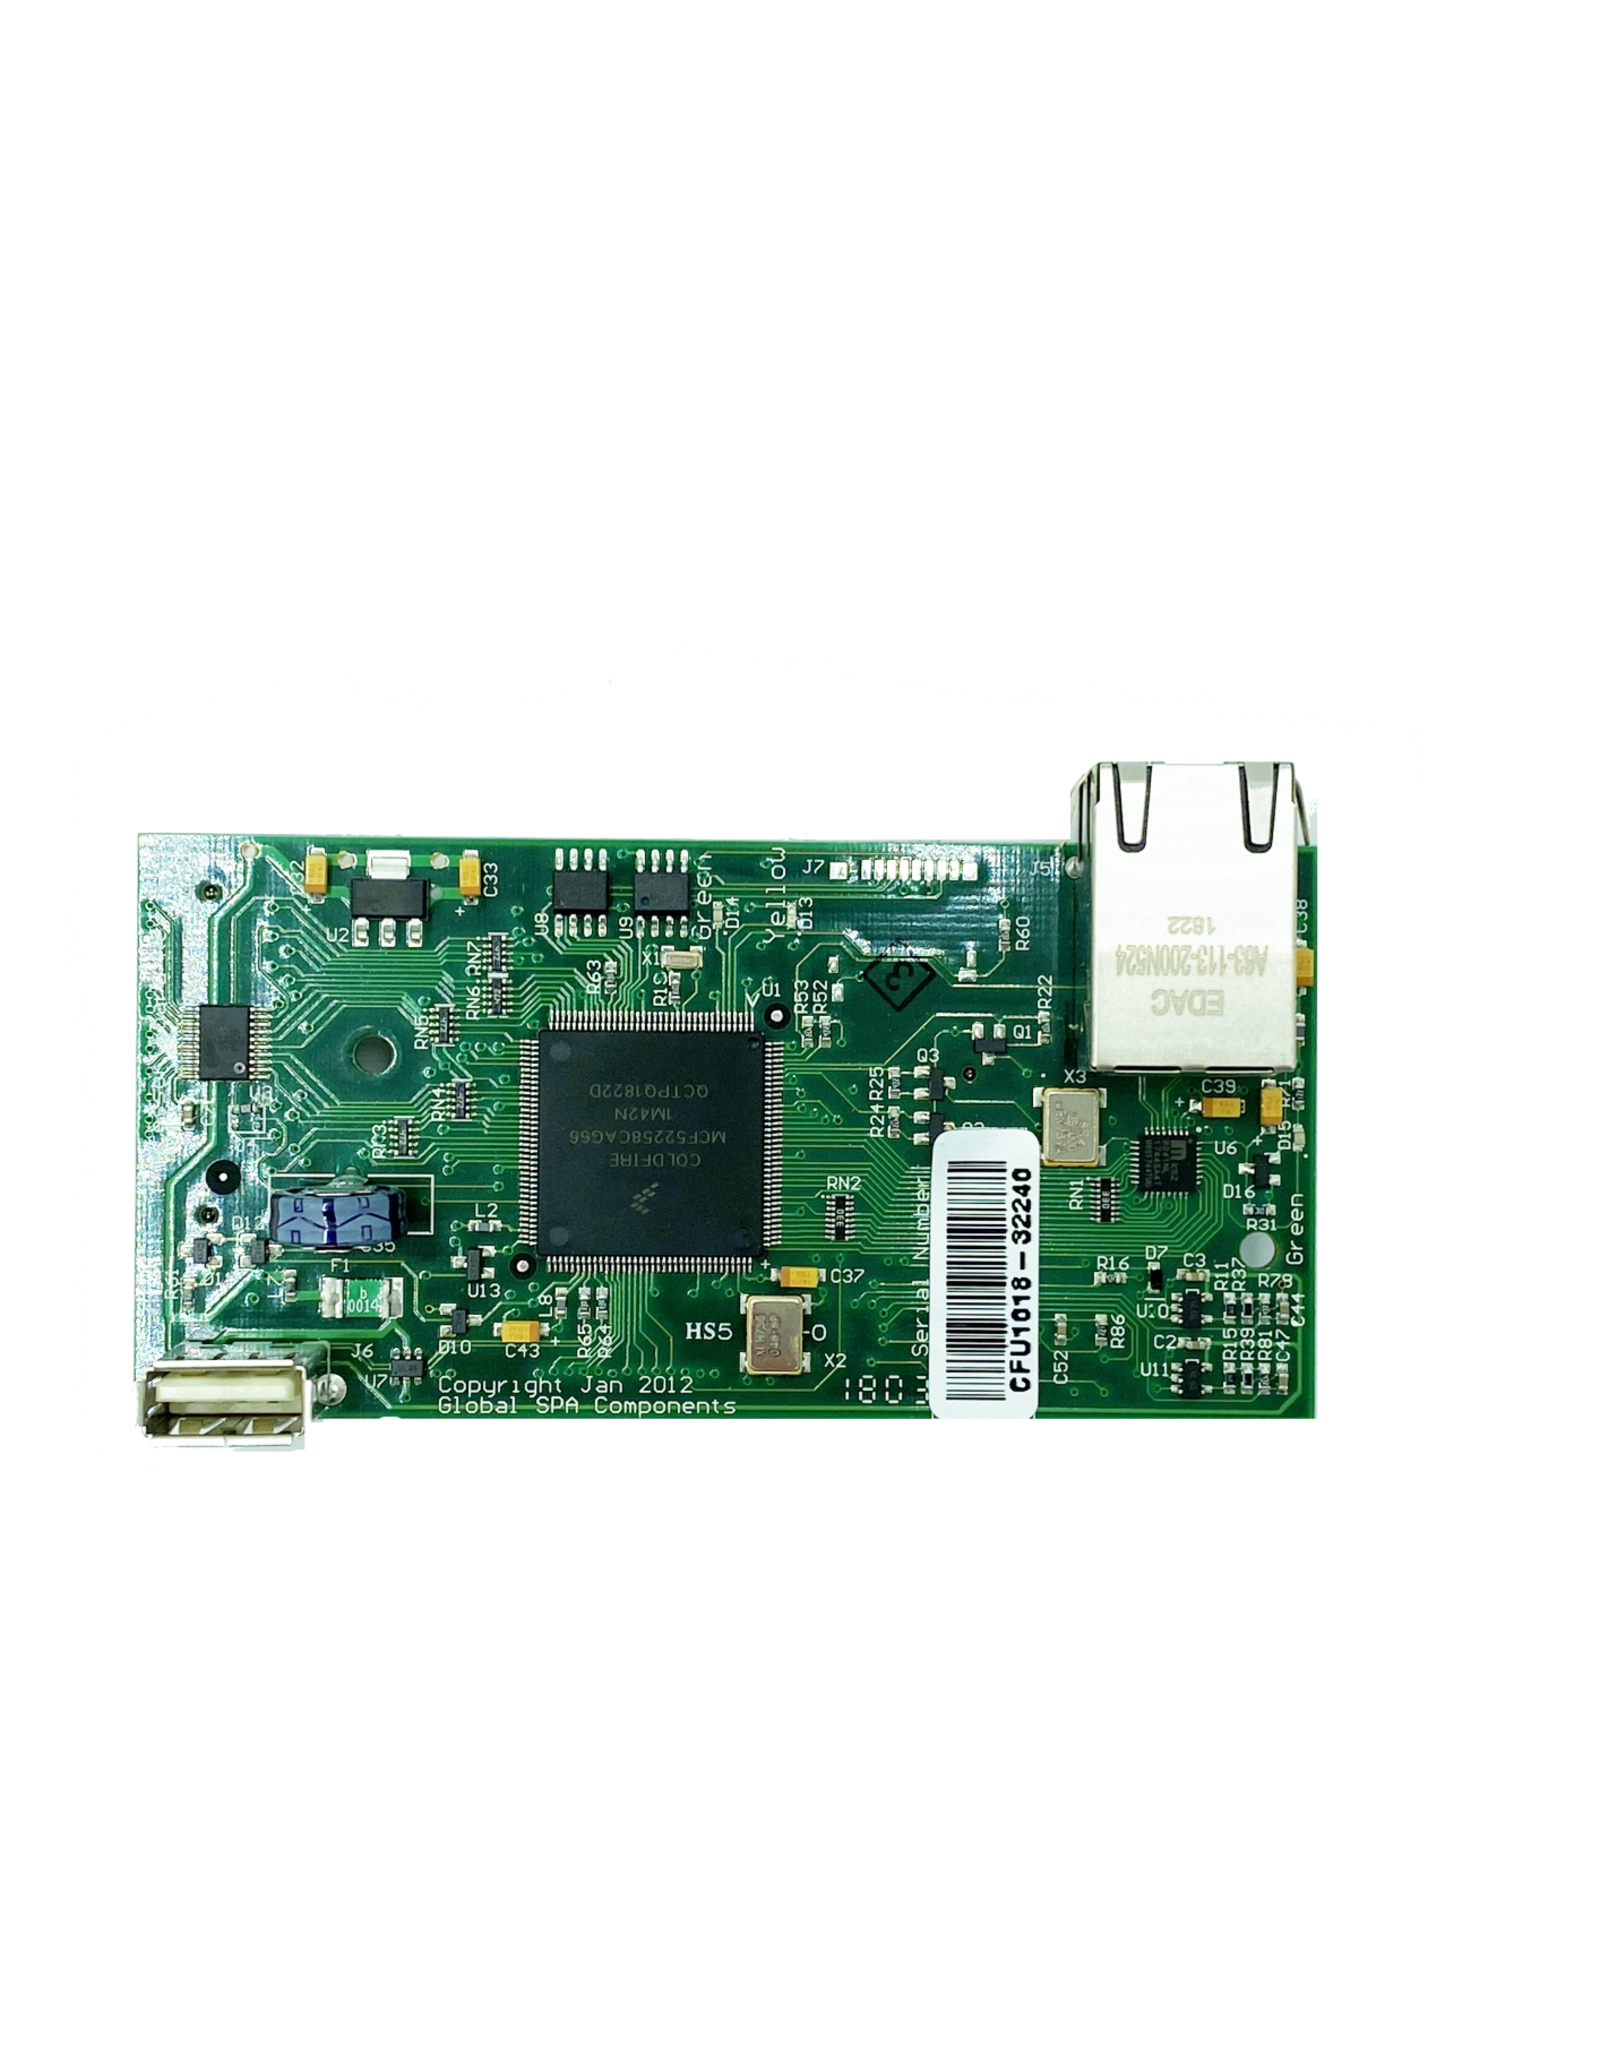 Arctic Spas Global Processor Card